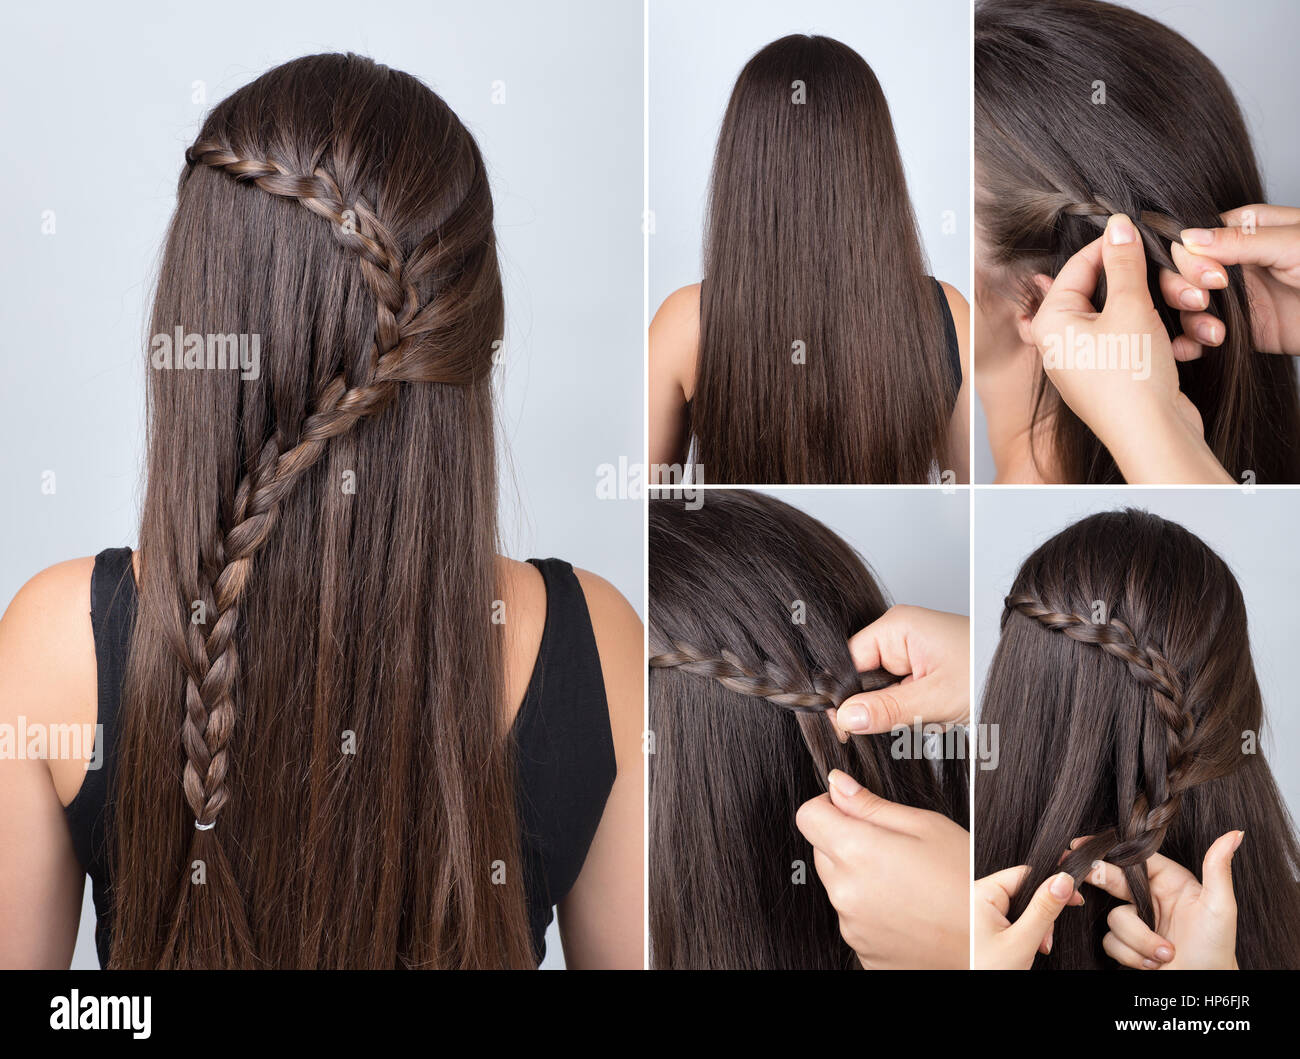 Hairdo Cascade Braid Hair Tutorial Hairstyle For Long Hair Simple